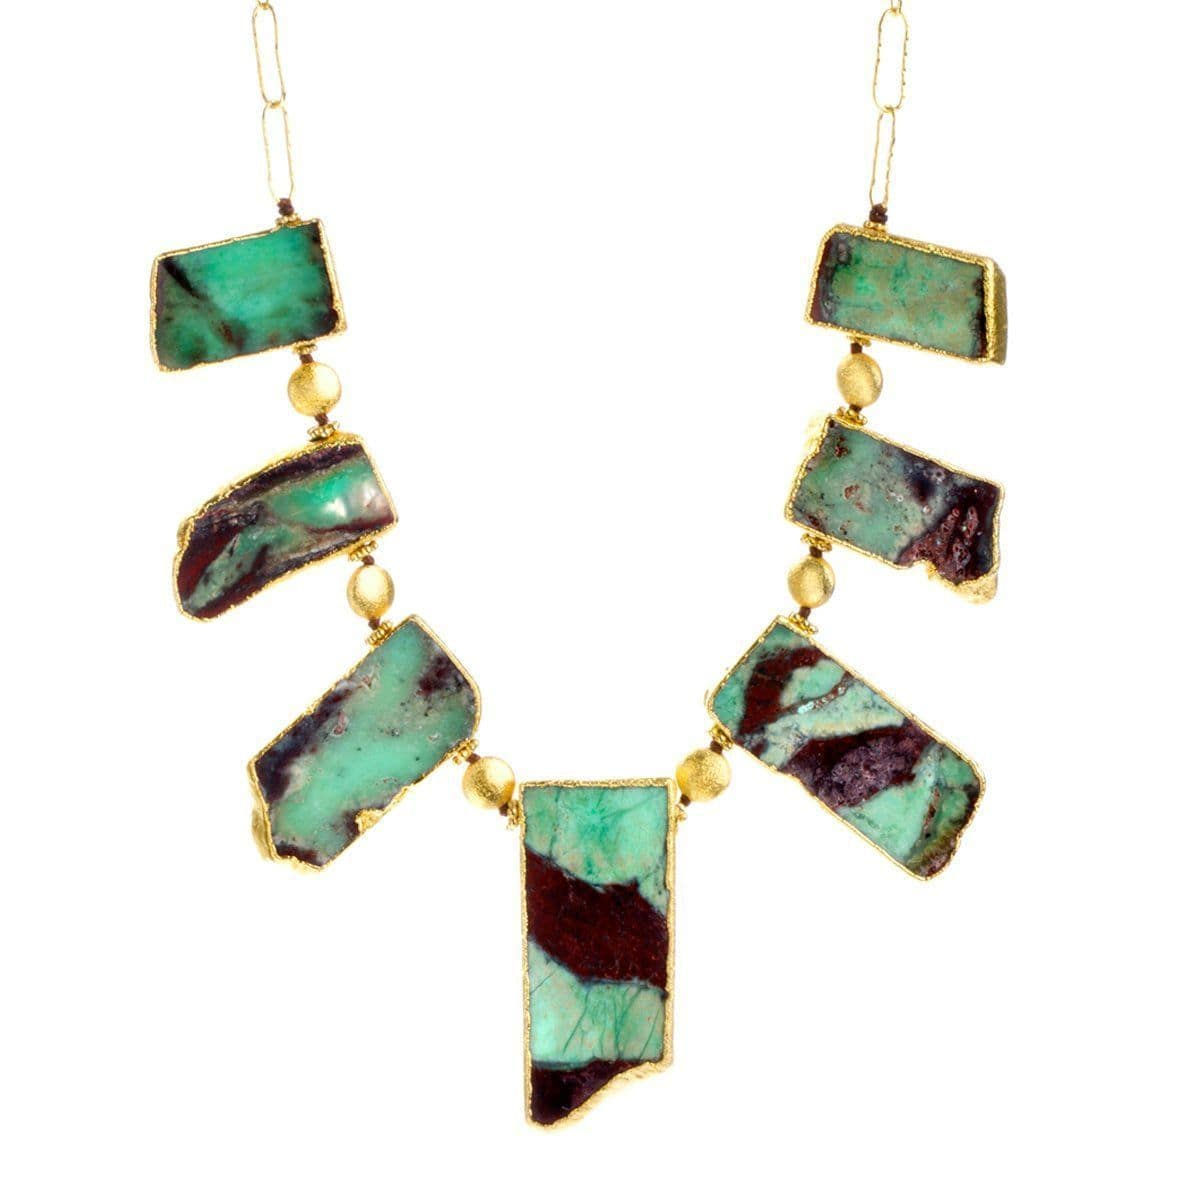 Love 22k Chrysoprase Necklace - G4050N-CHR-Nina Nguyen-Renee Taylor Gallery